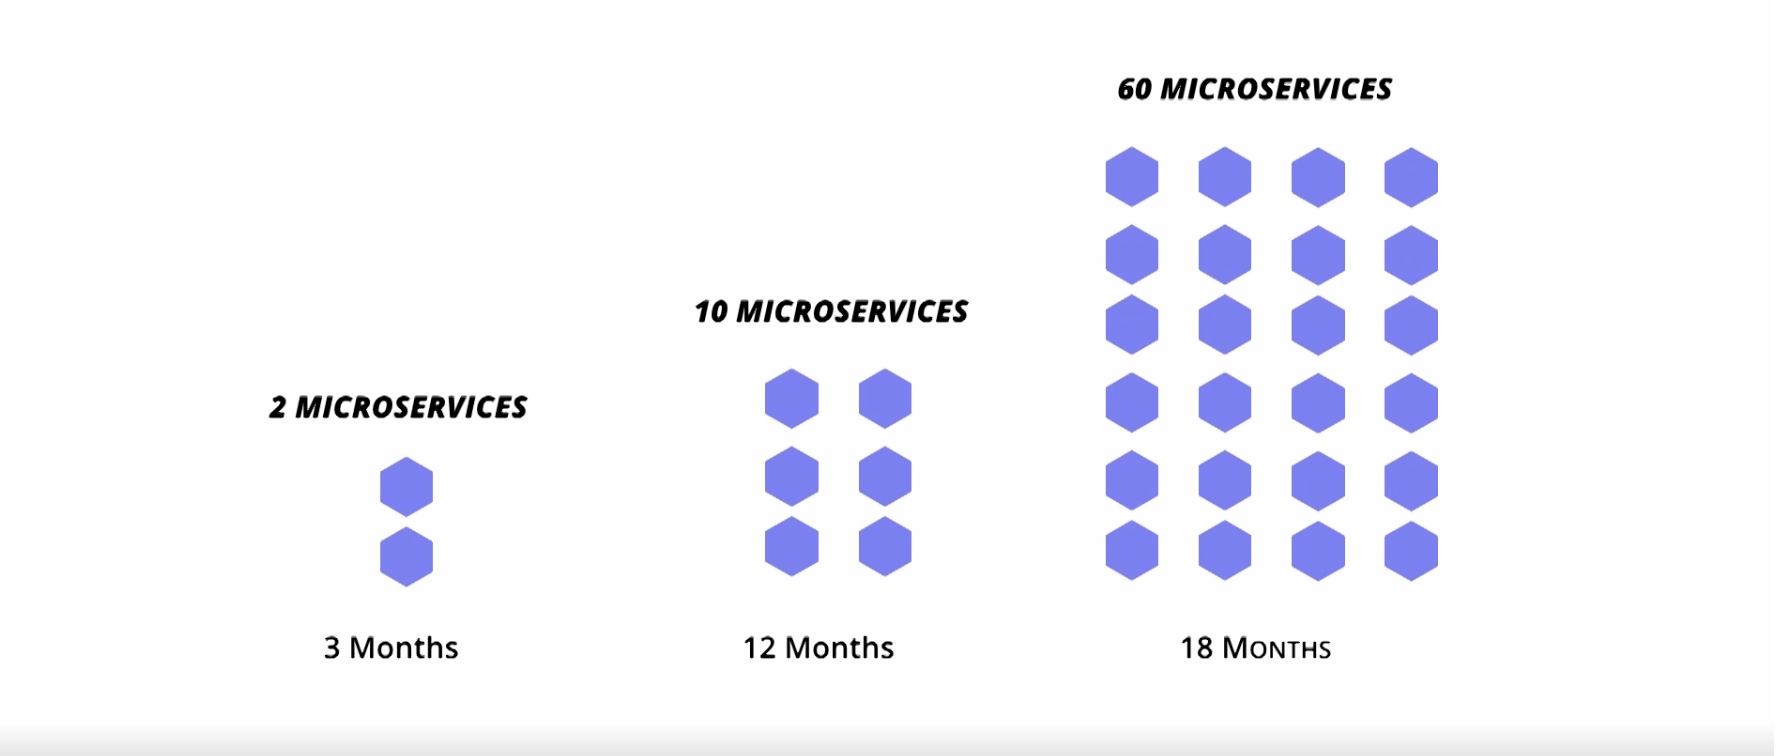 Microservices growth of RealEstateVentures.com.au